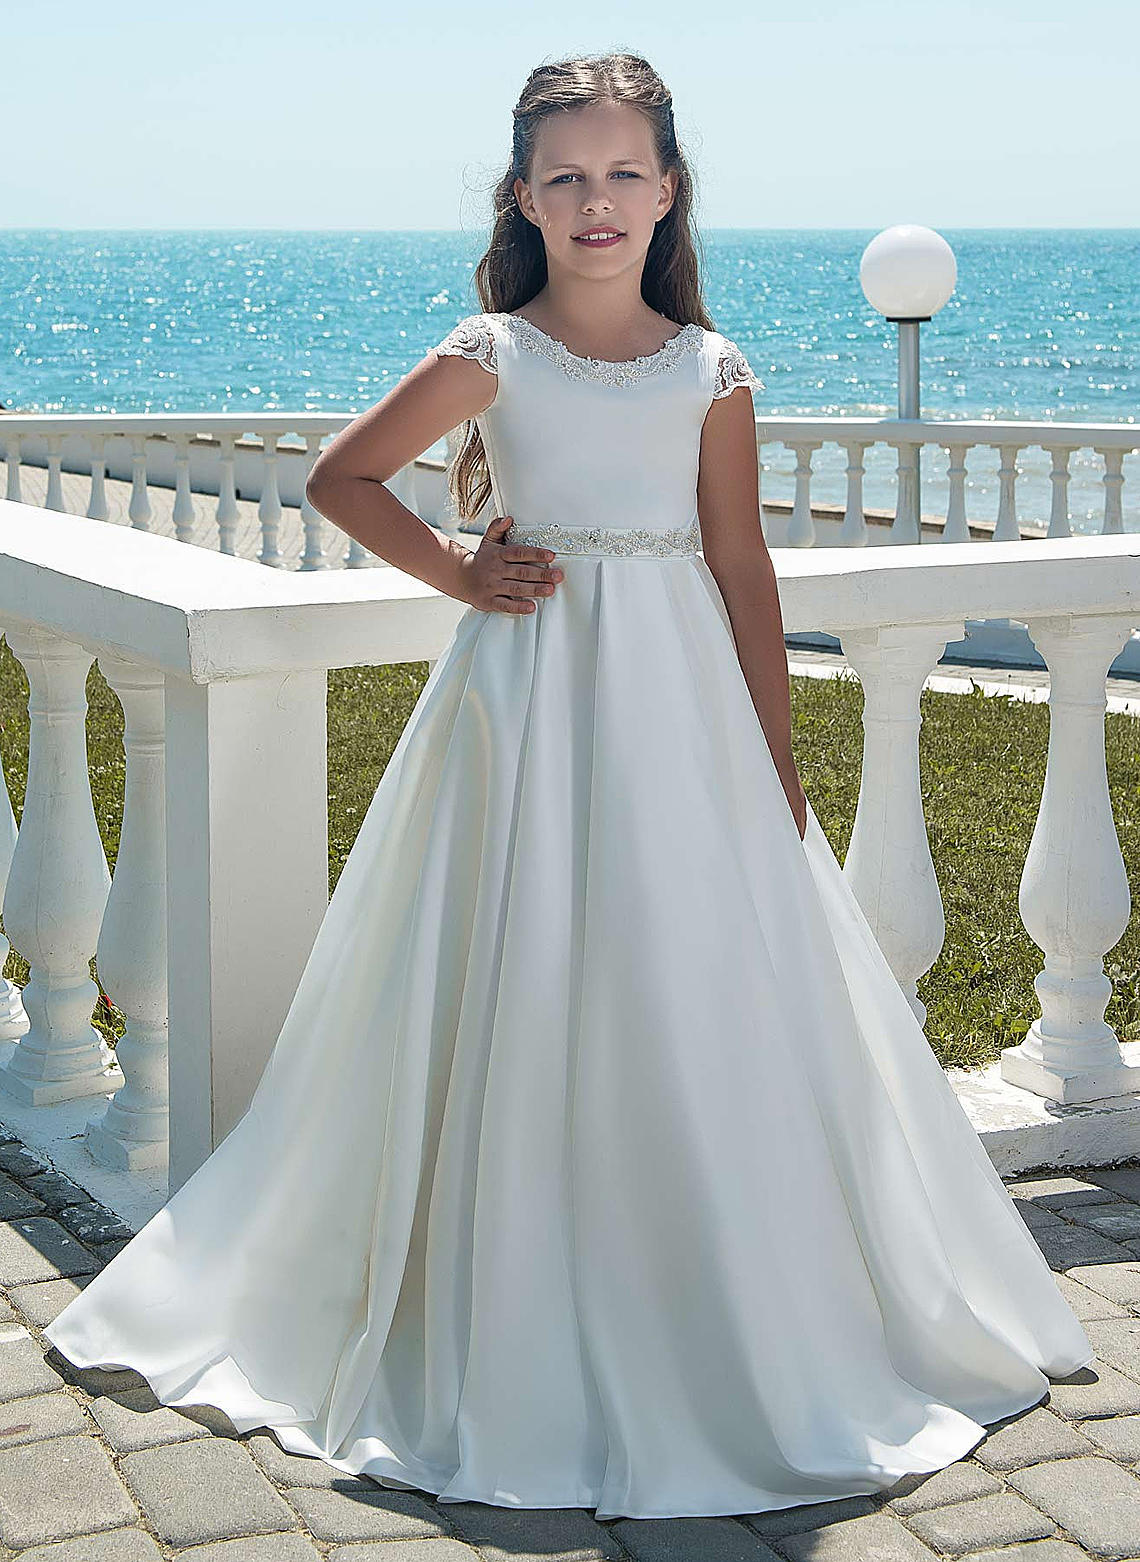 84c289a8778 Couture Princess Flower Girl Dresses - Data Dynamic AG